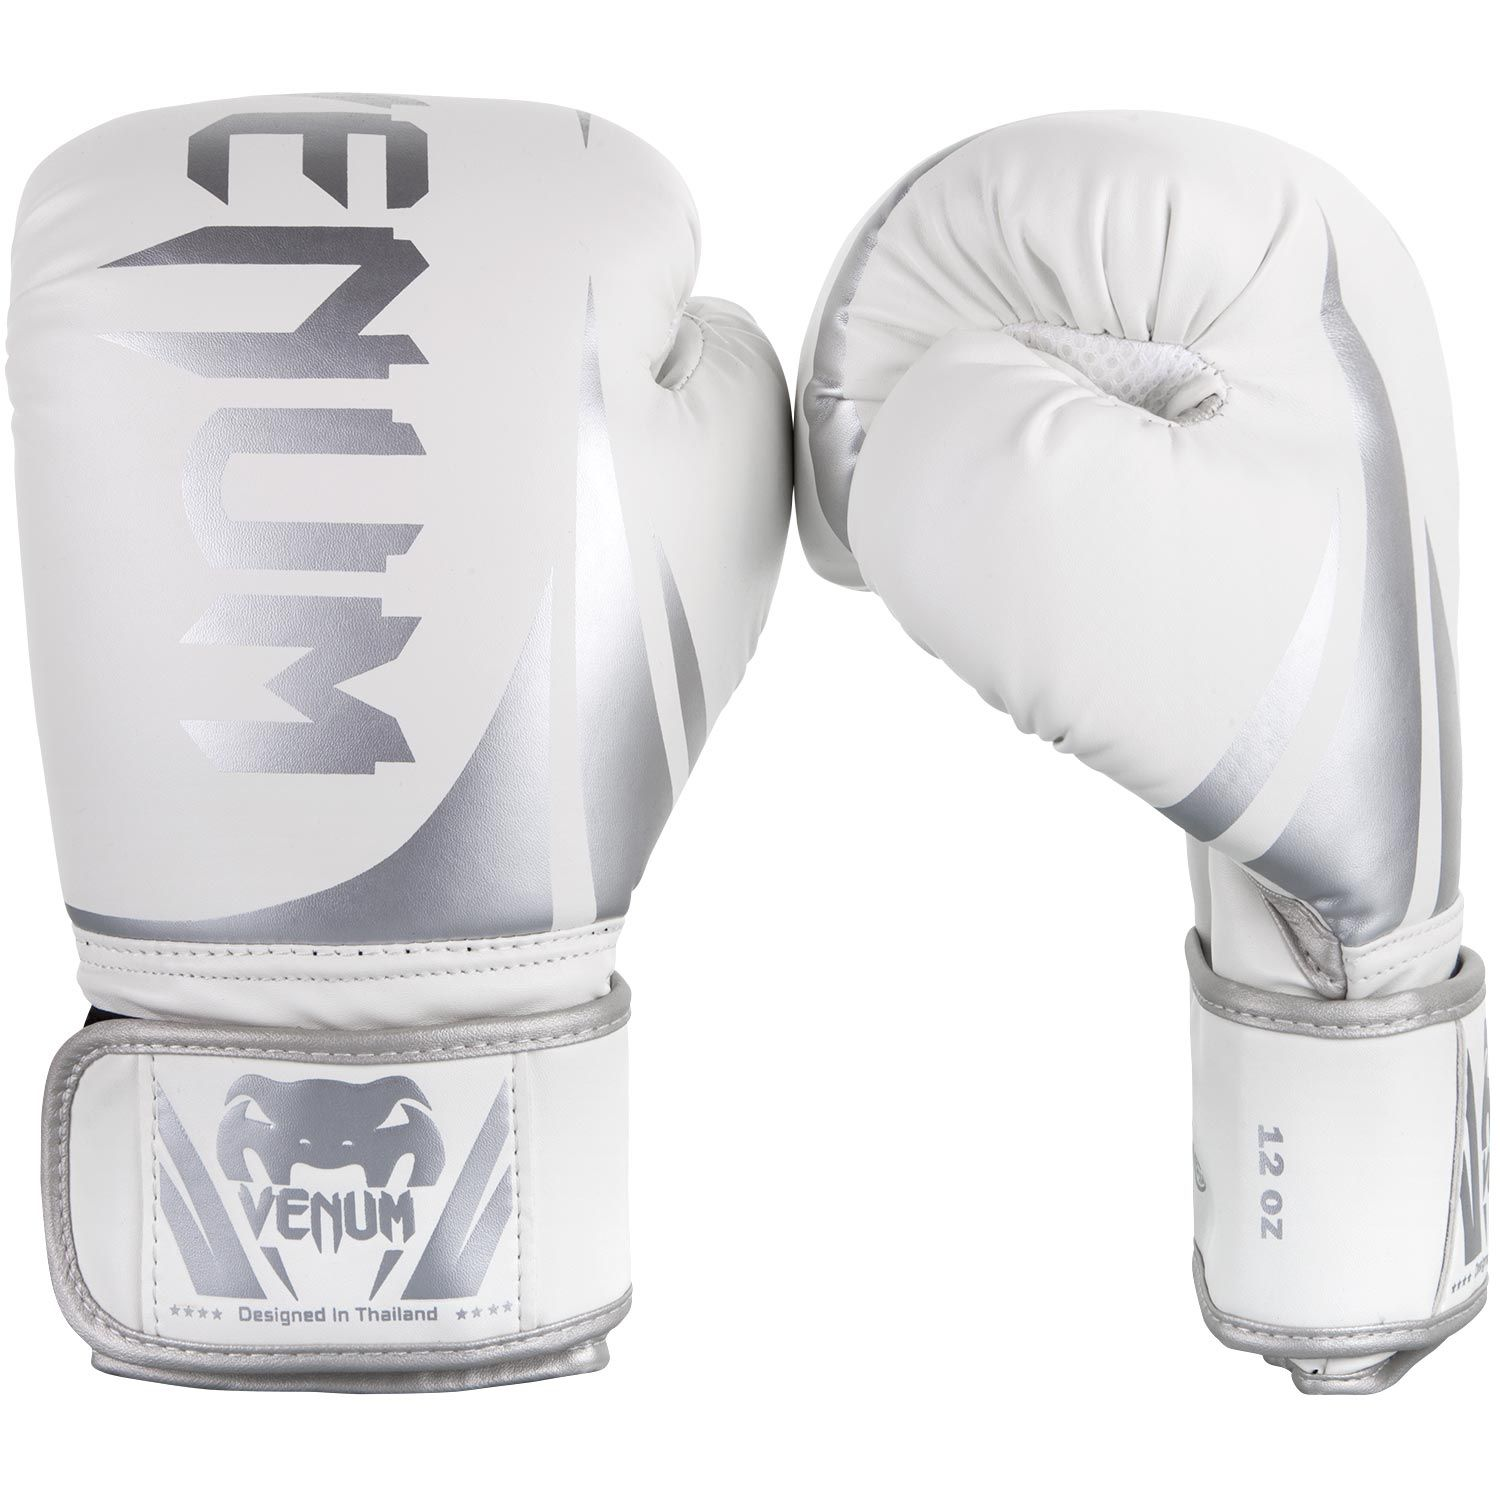 Venum Challenger 2.0 Boxing Gloves - White/Silver